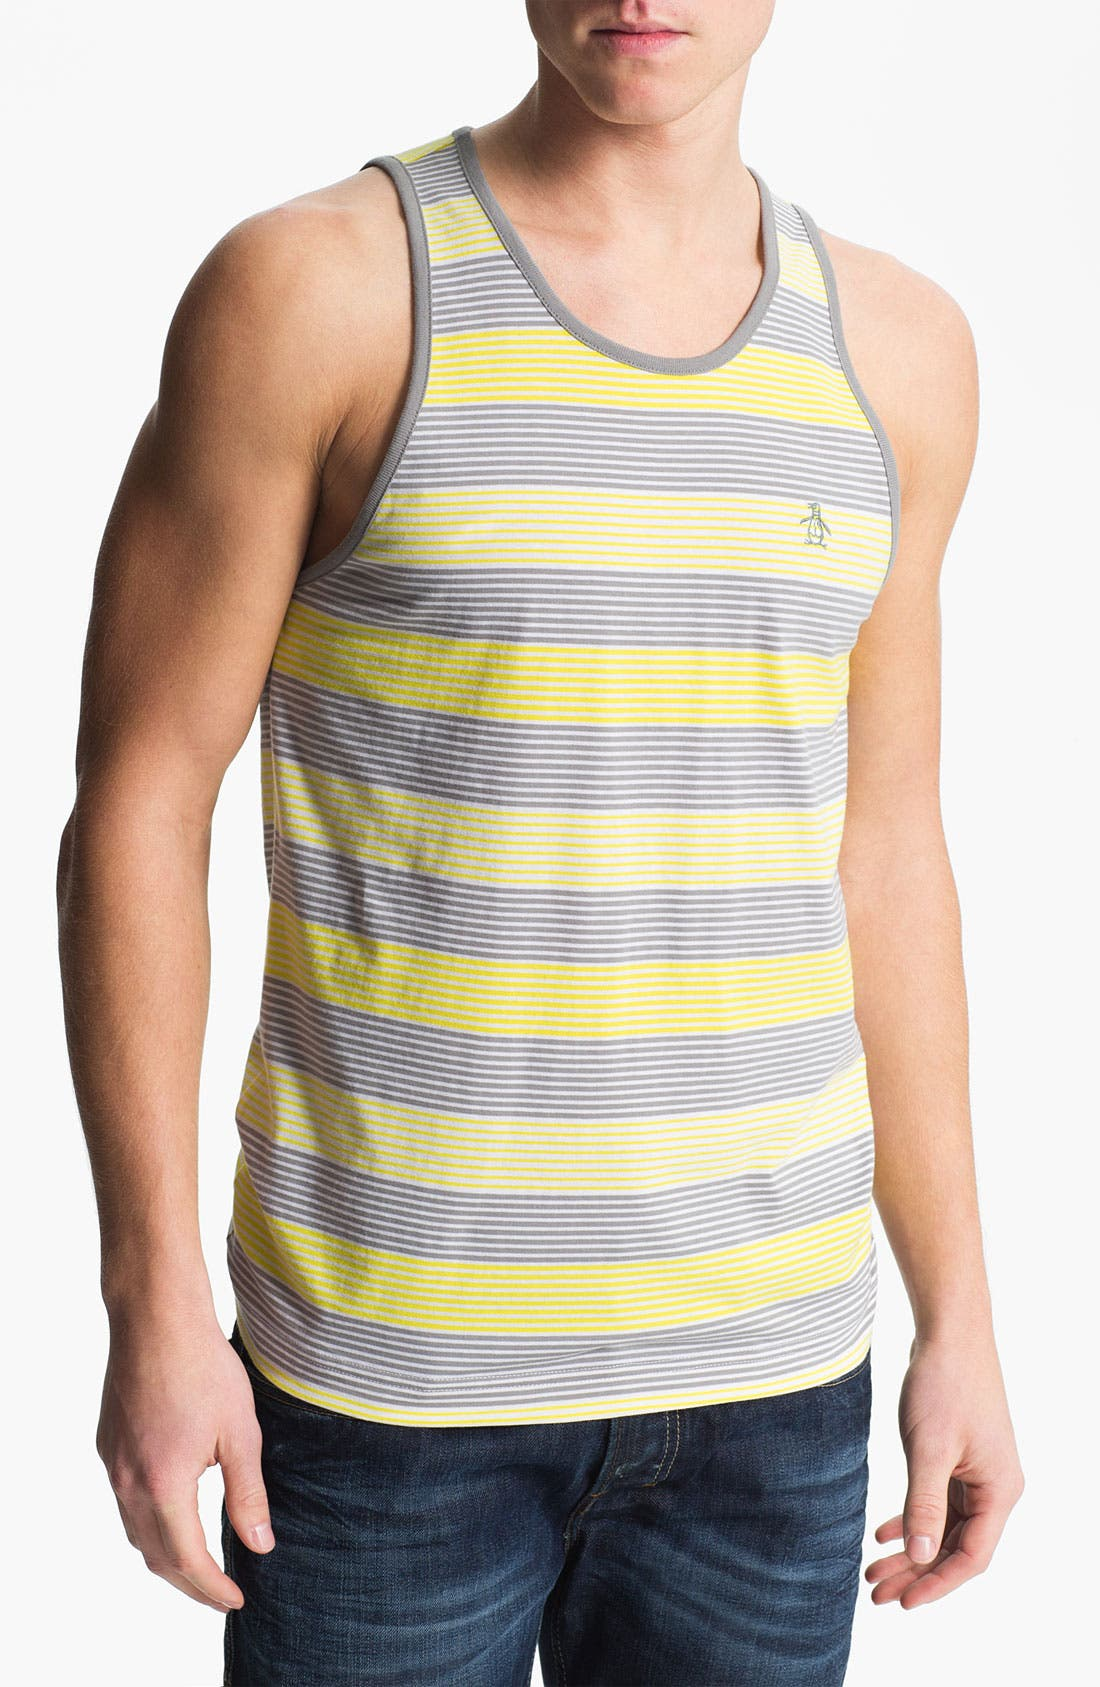 Alternate Image 1 Selected - Original Penguin Stripe Tank Top